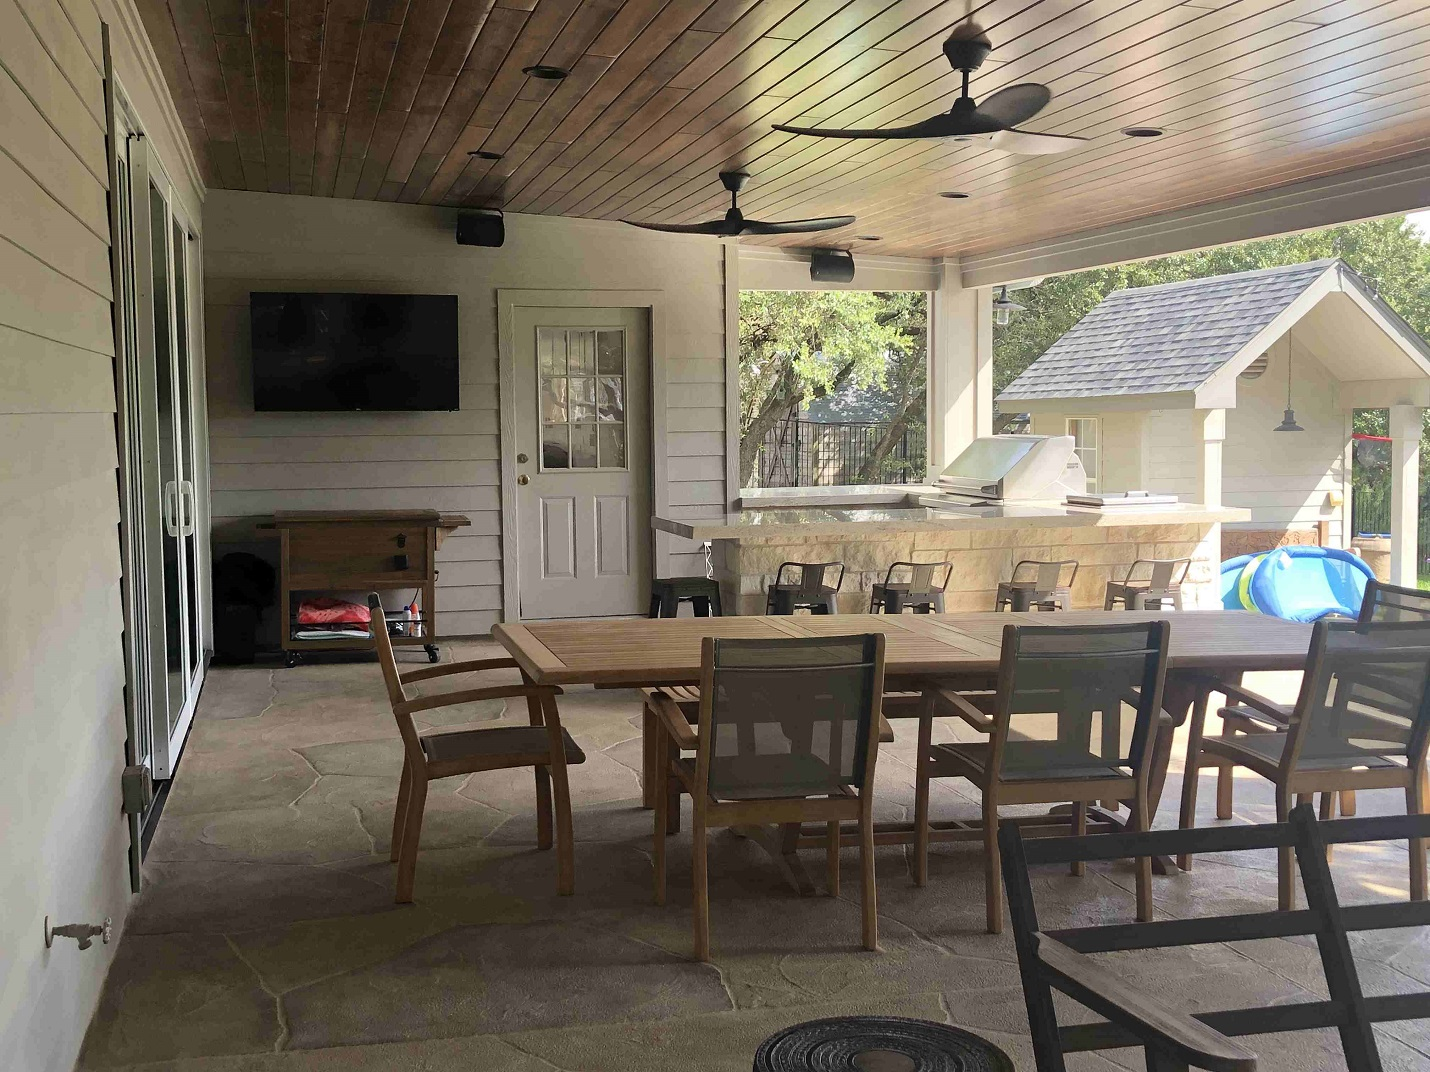 Spacious-and-accompanying-new-covered-patio-space